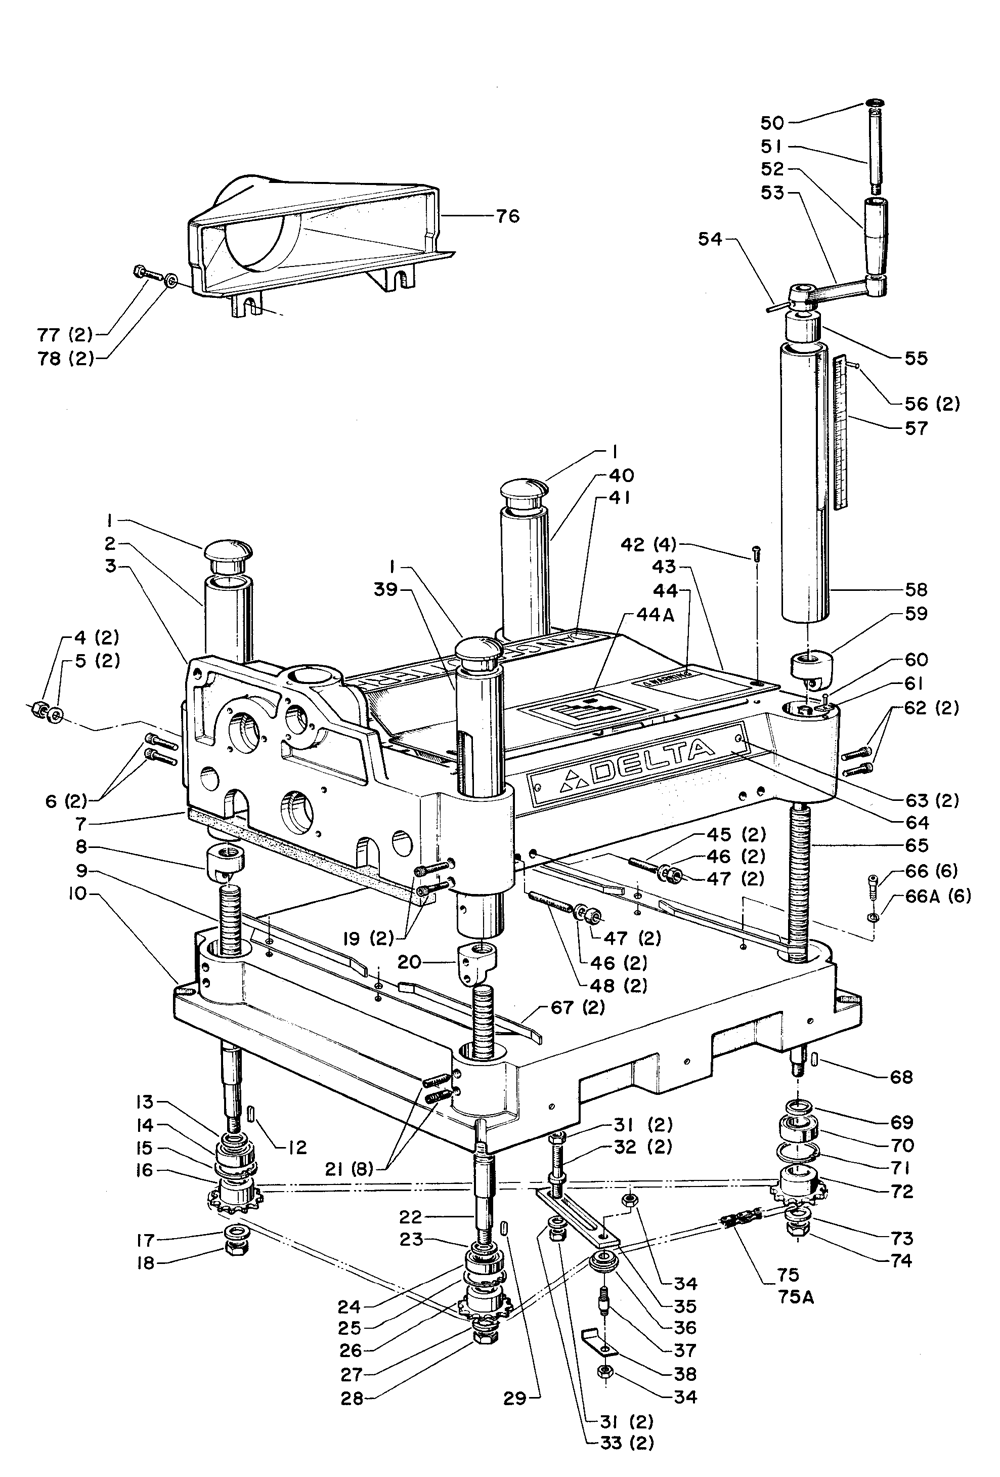 Ridgid R4510 Table Saw Wiring Diagram. Diagrams. Wiring